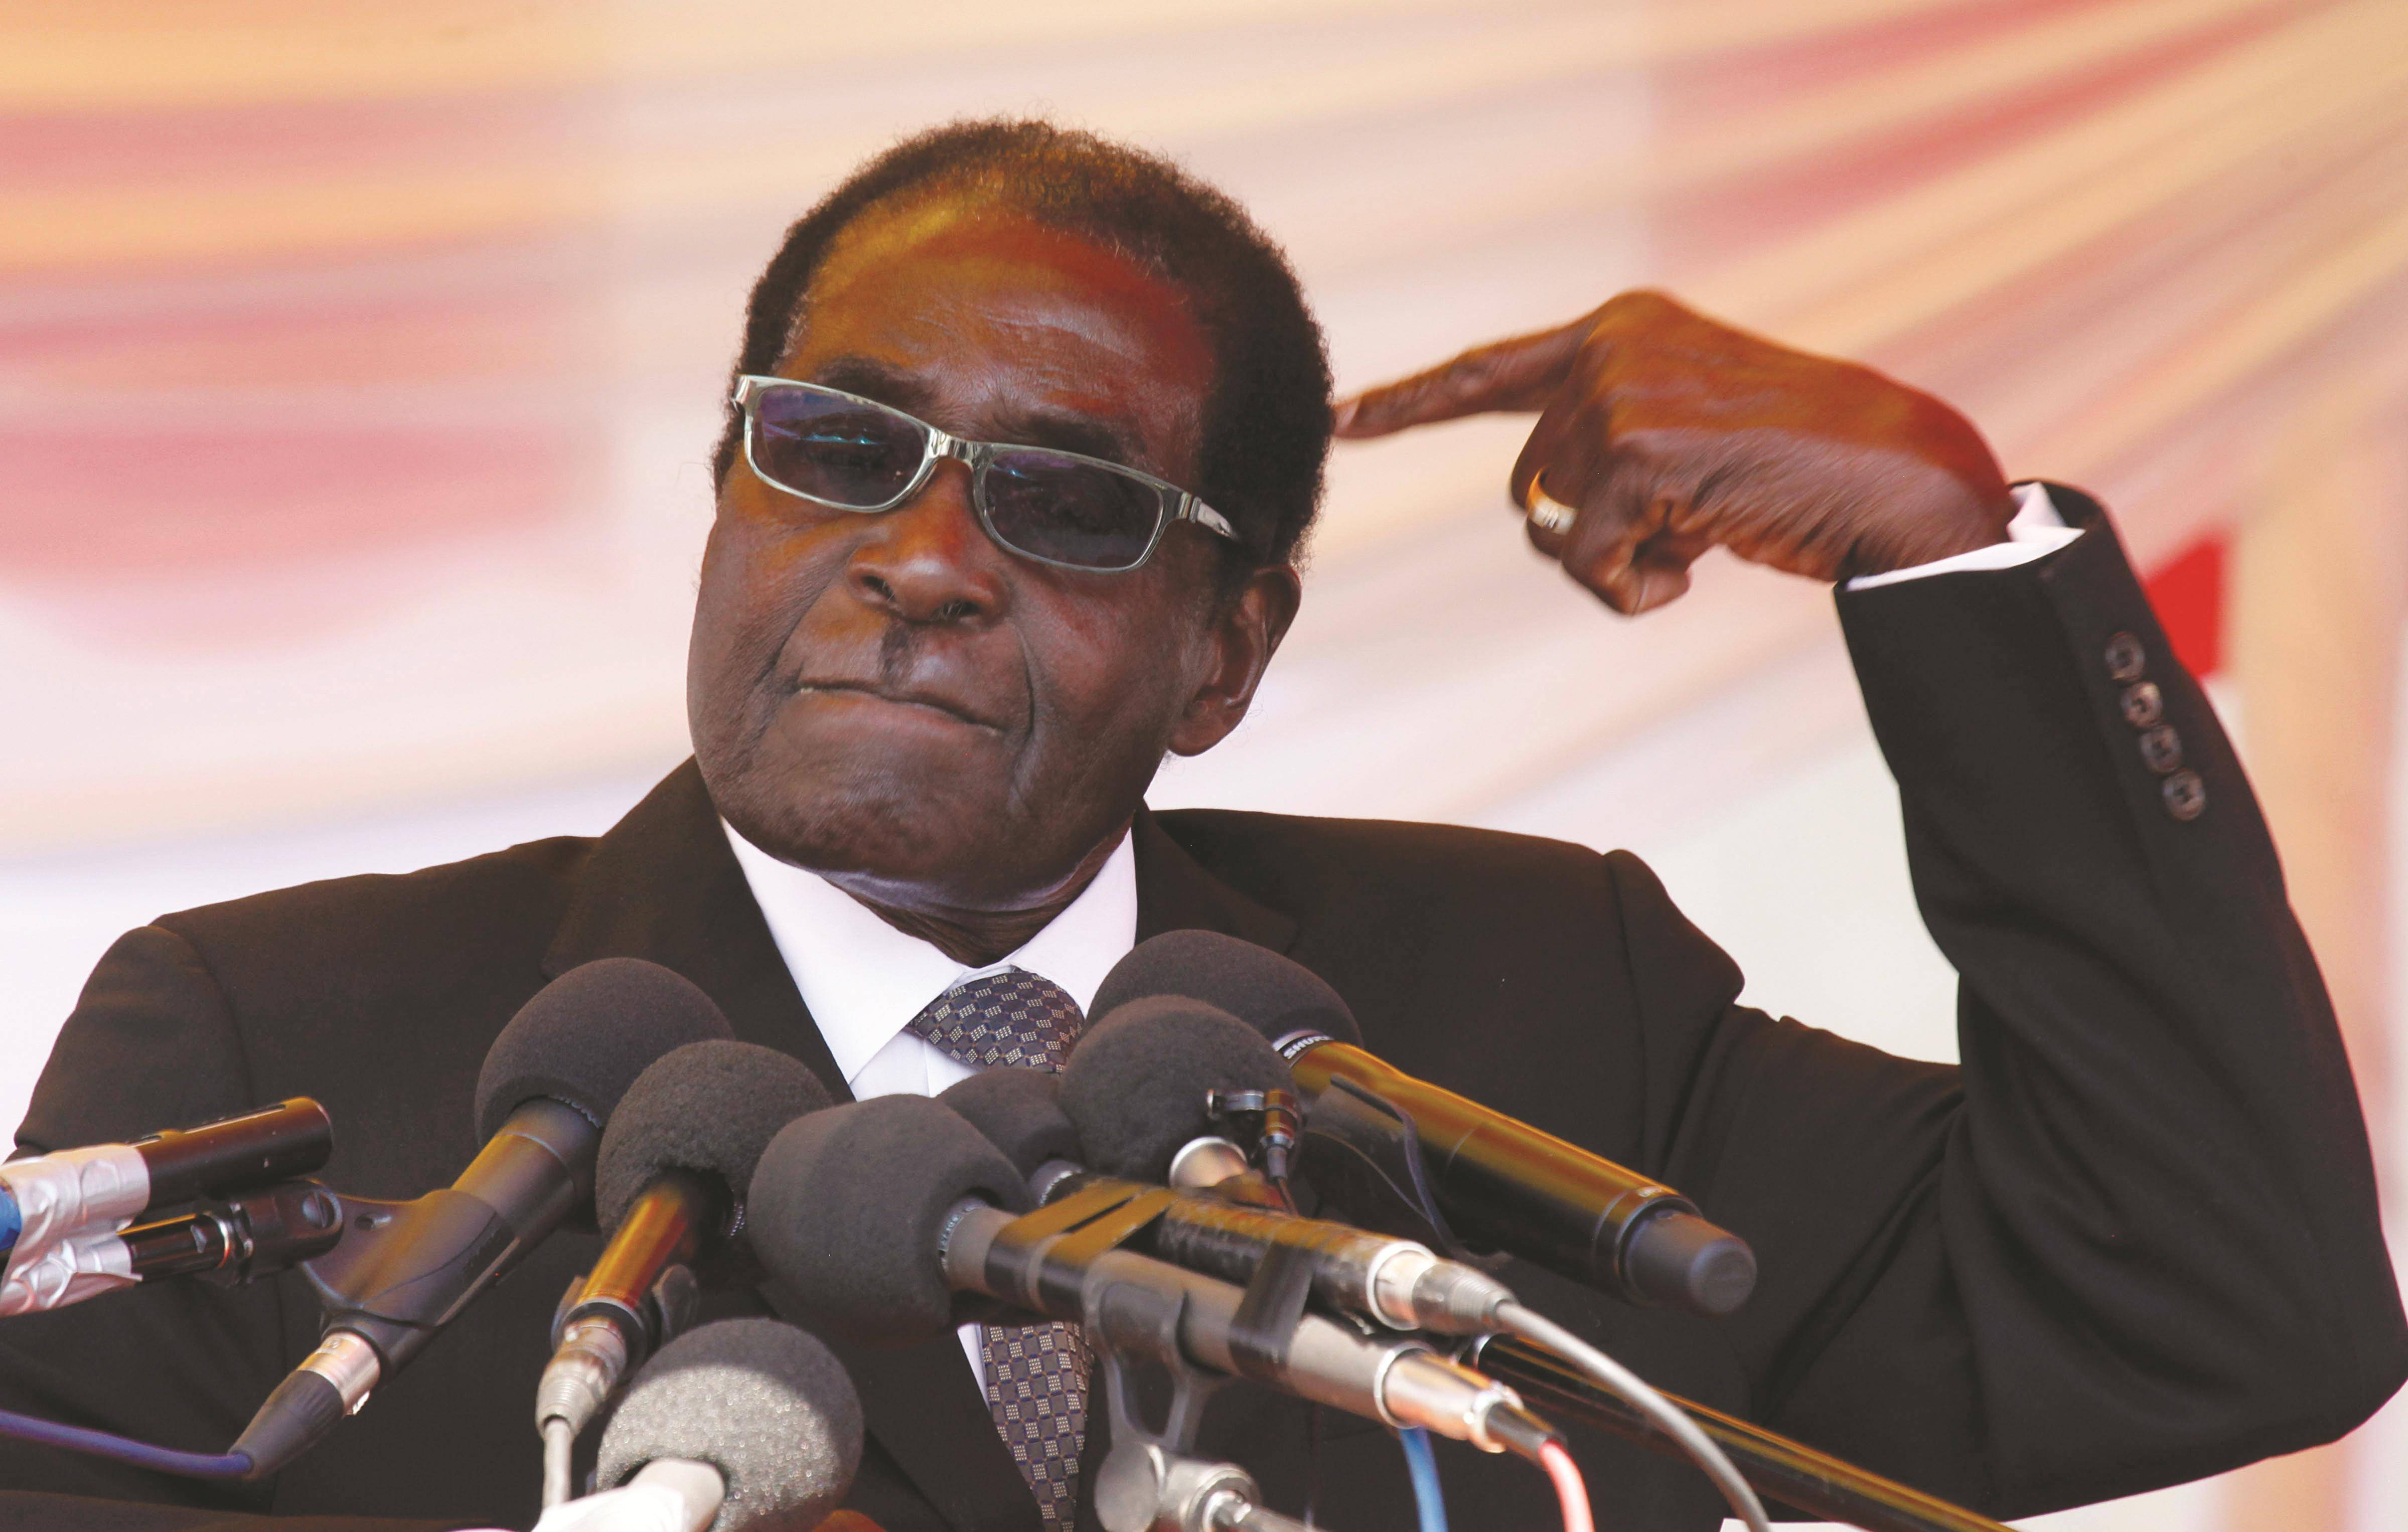 Zimbabwean President Robert Mugabe on friday reshuffled his cabinet, a day after a new opposition party was launched.